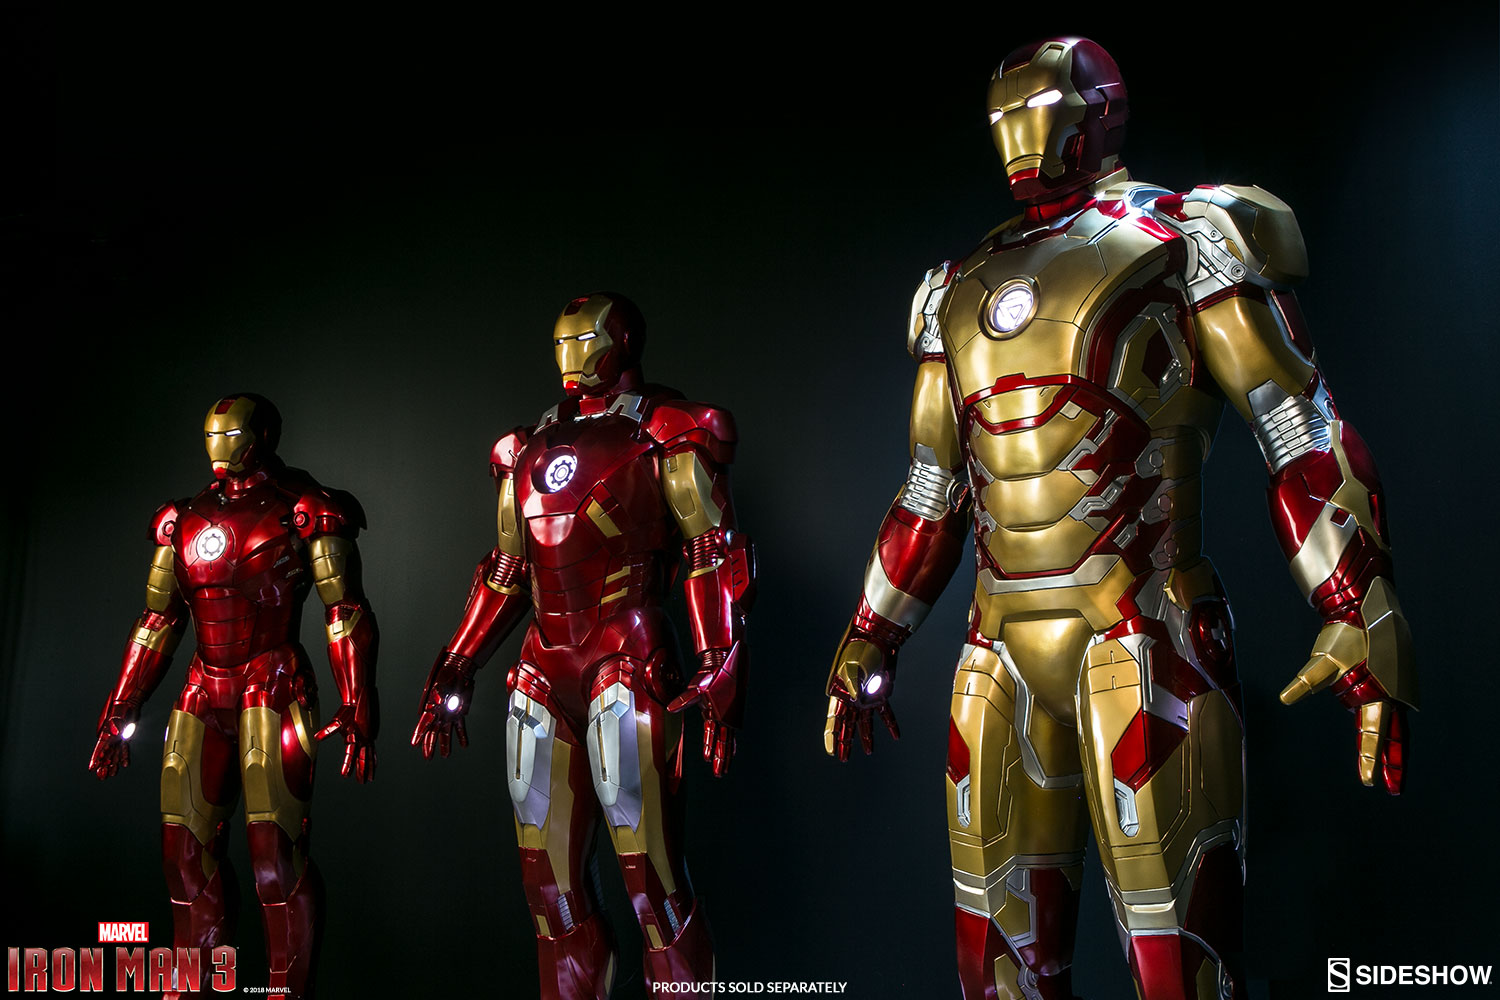 Imà Genes De Iron Man: Pre-Orders Live For Life Size Iron Man Mark 42 By Sideshow